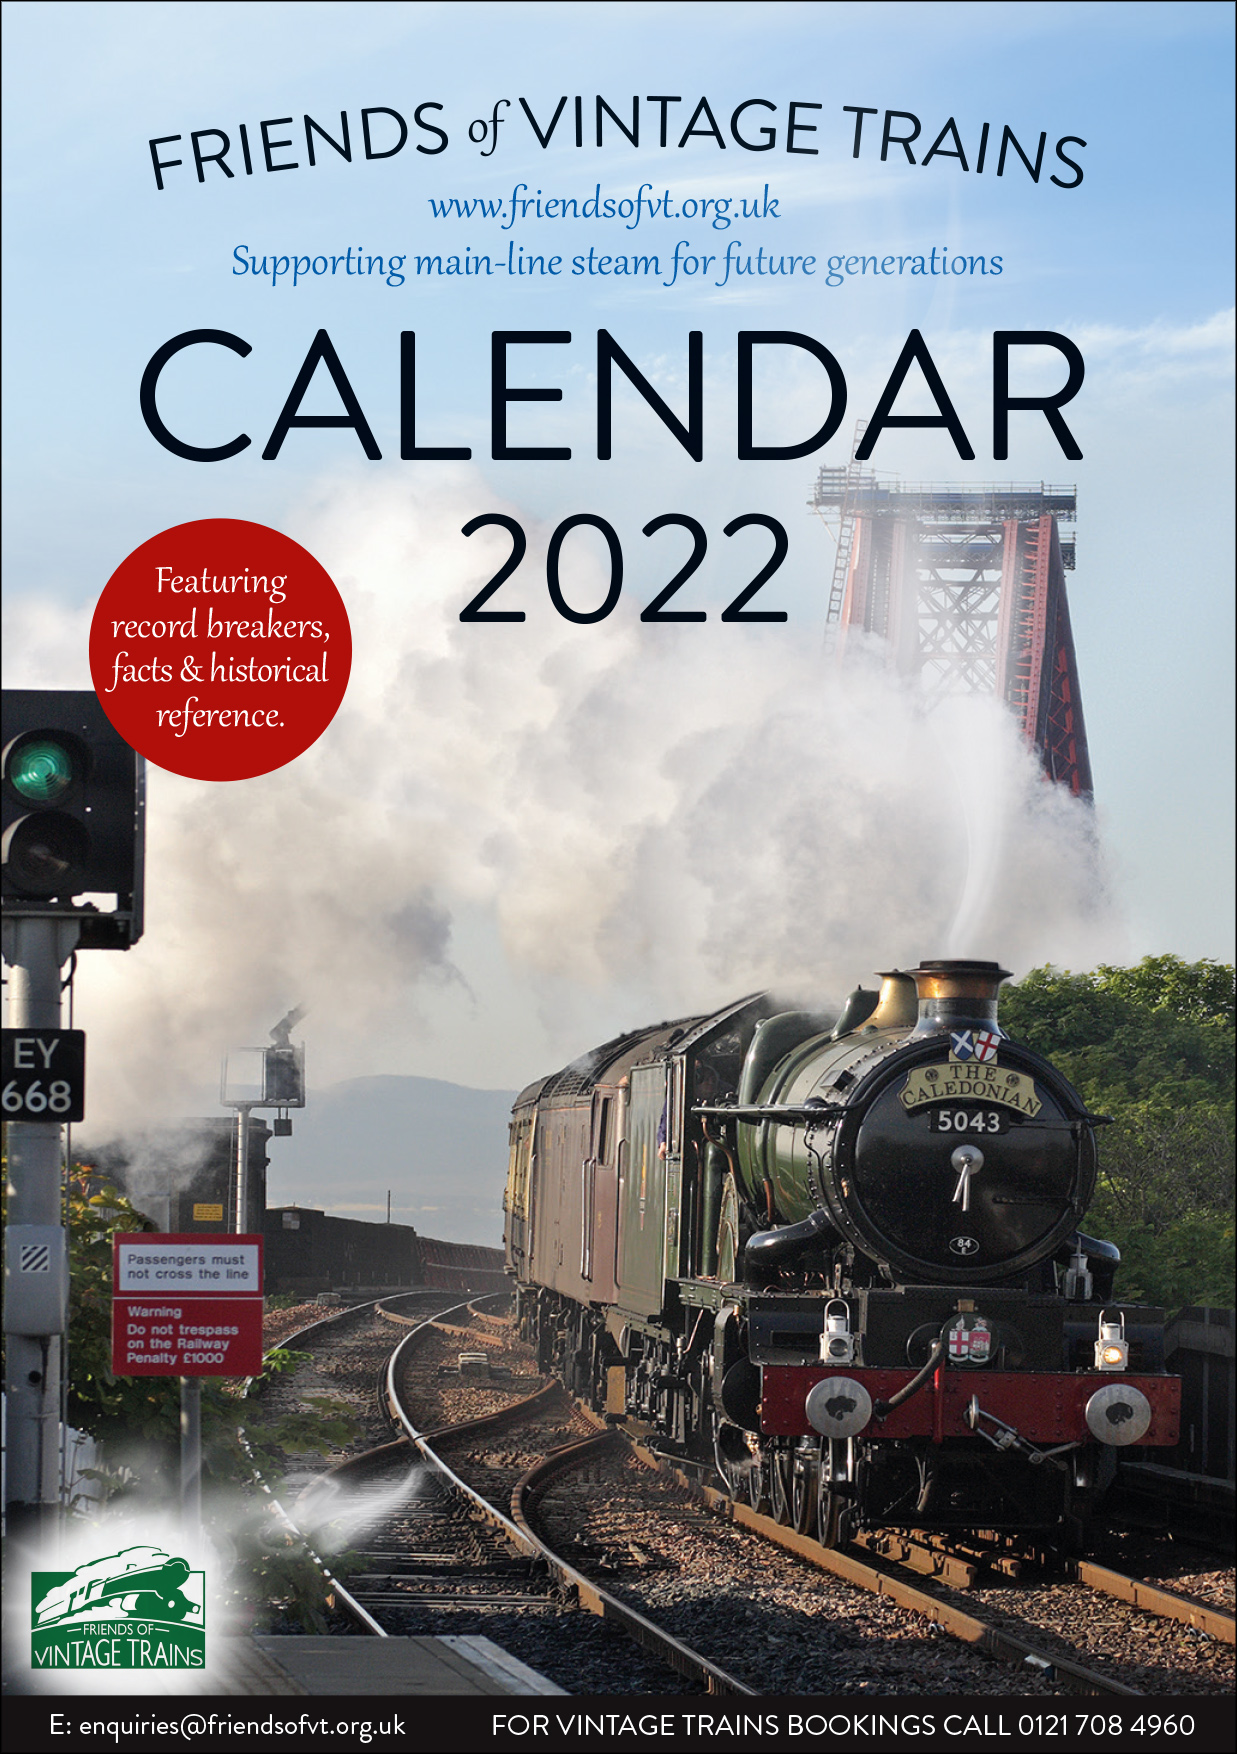 The cover of the 2022 Calendar